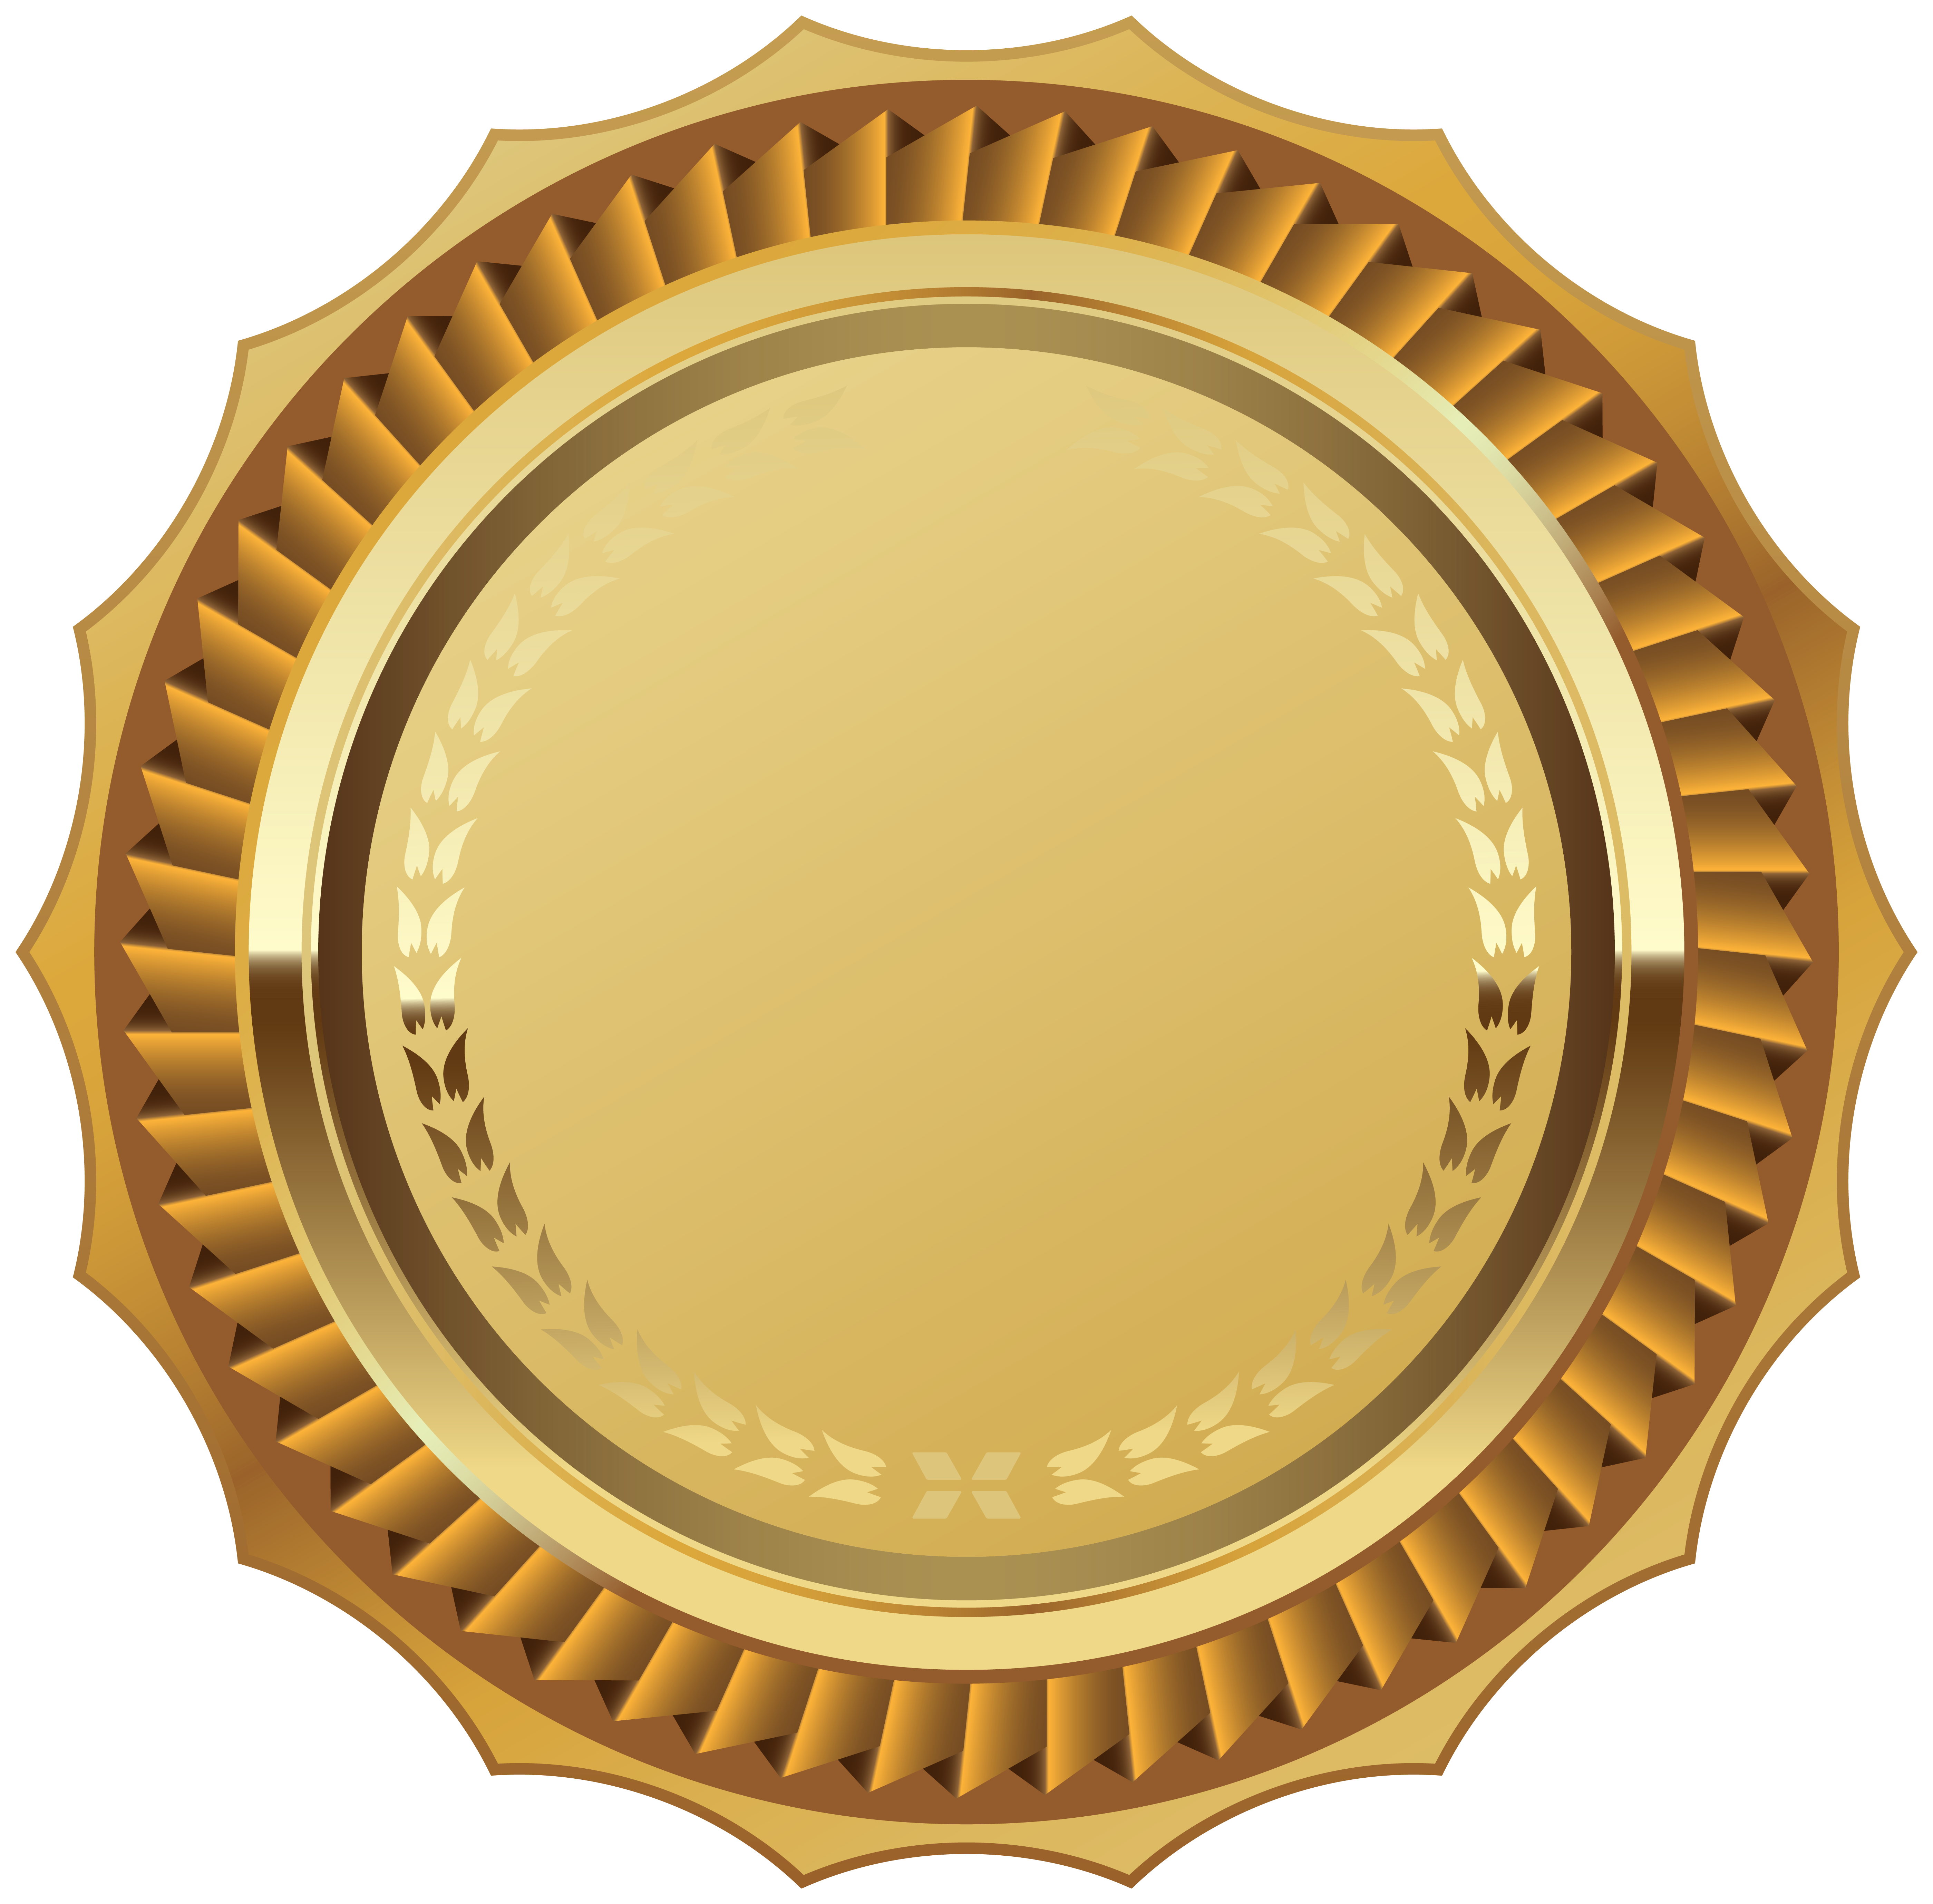 Gold Seal with Ribbon PNG Clipart Image.